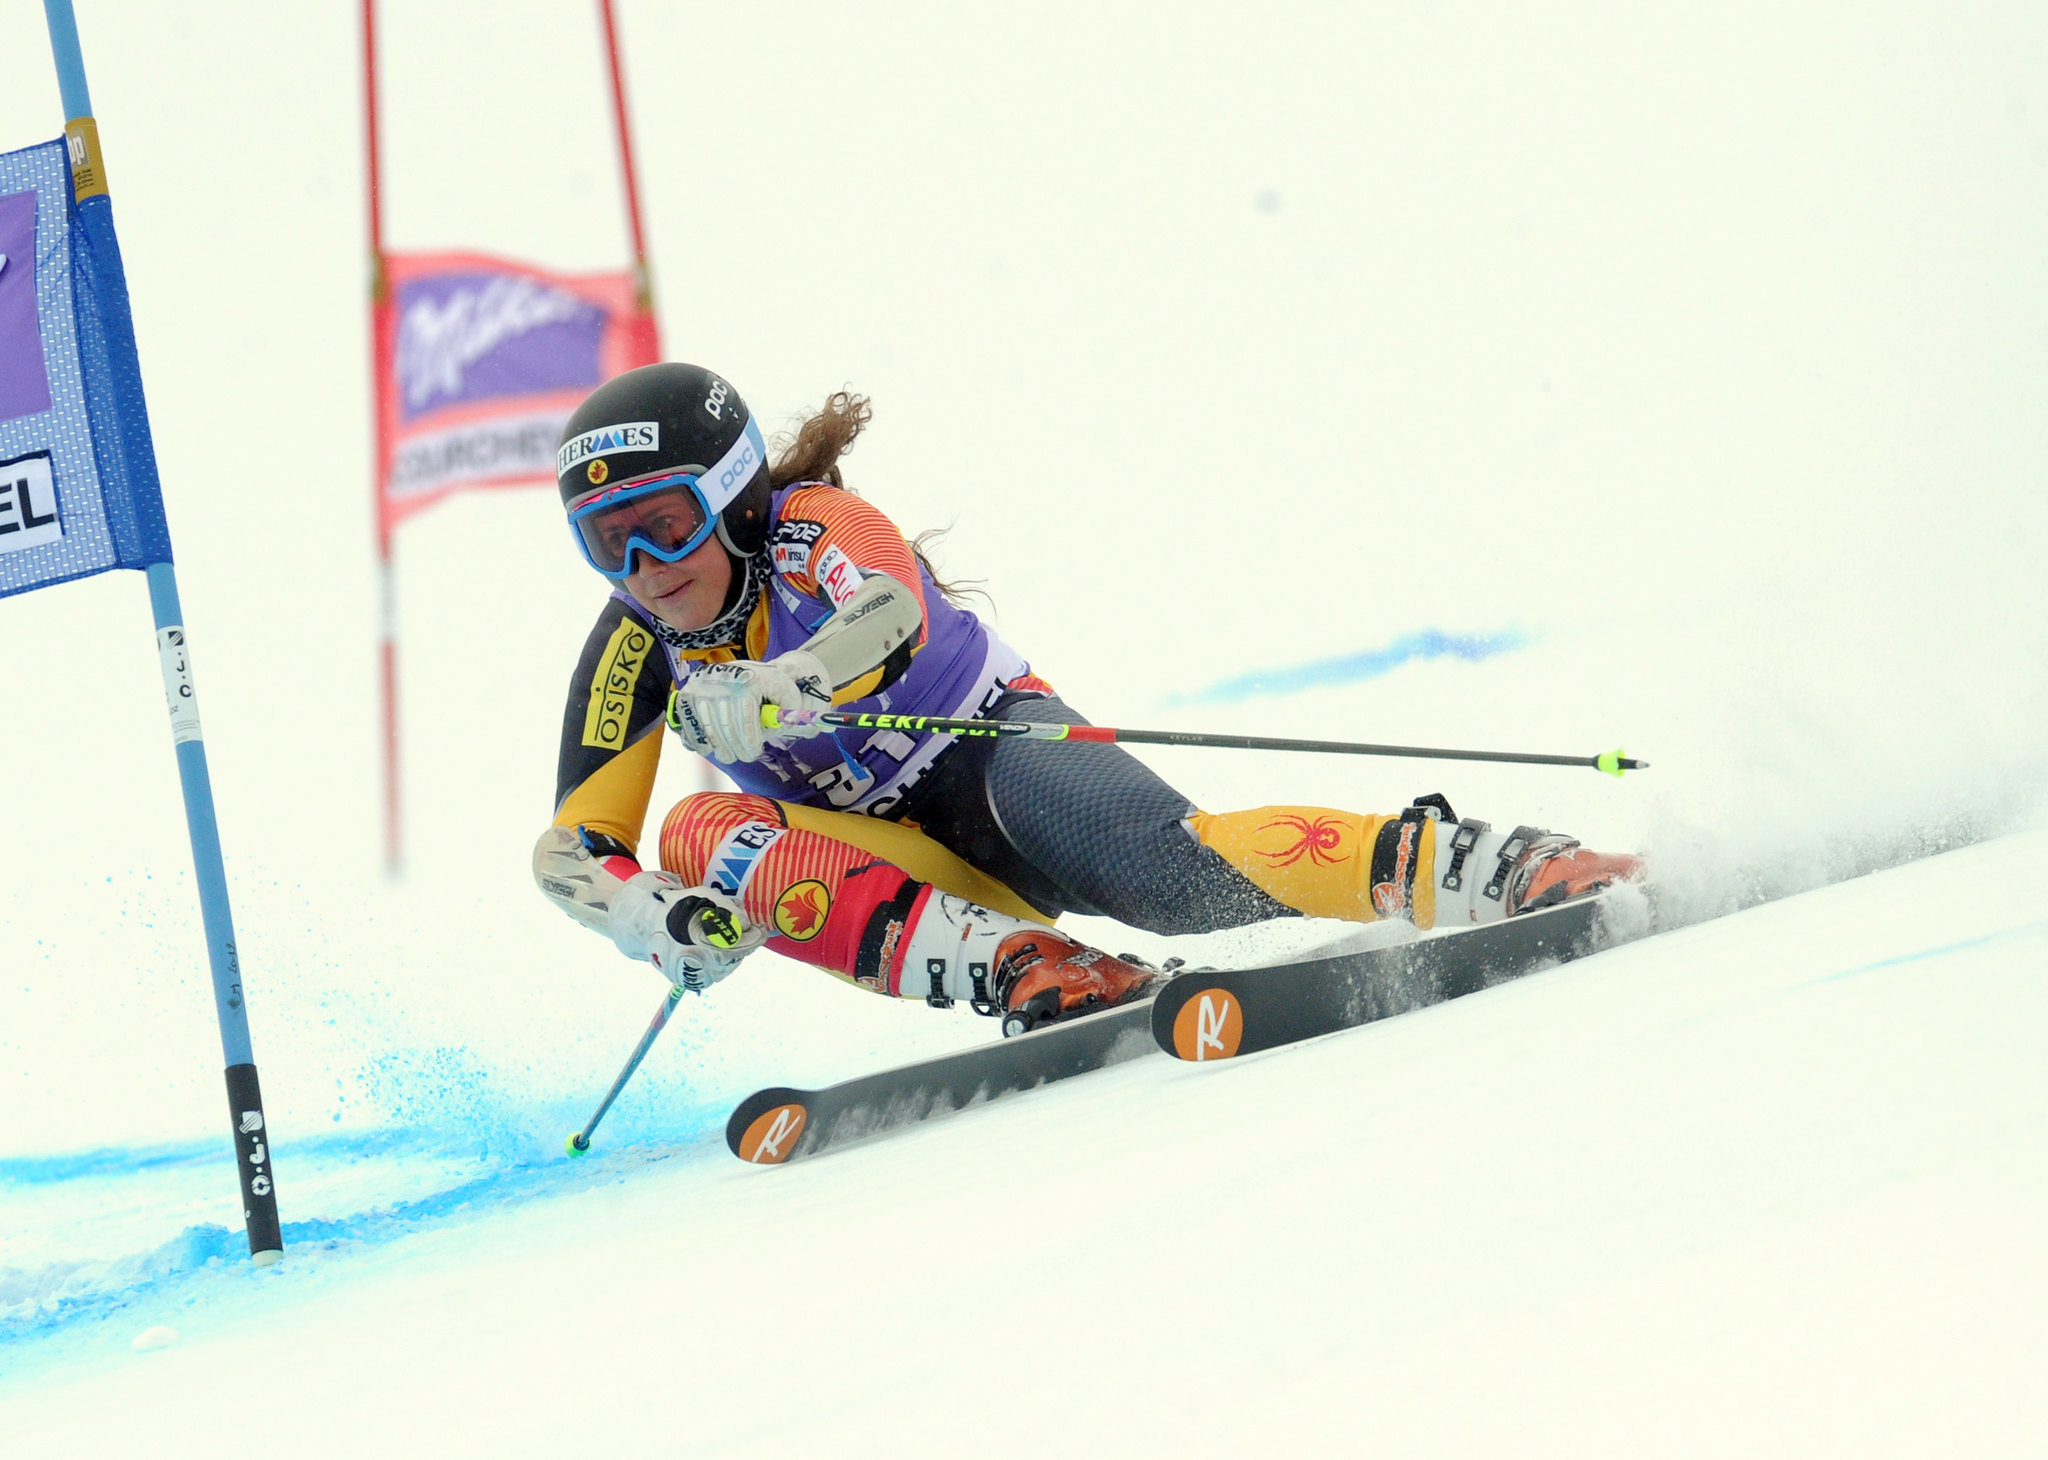 Marie-Pier Préfontaine during World Cup giant slalom in Courchevel, France.